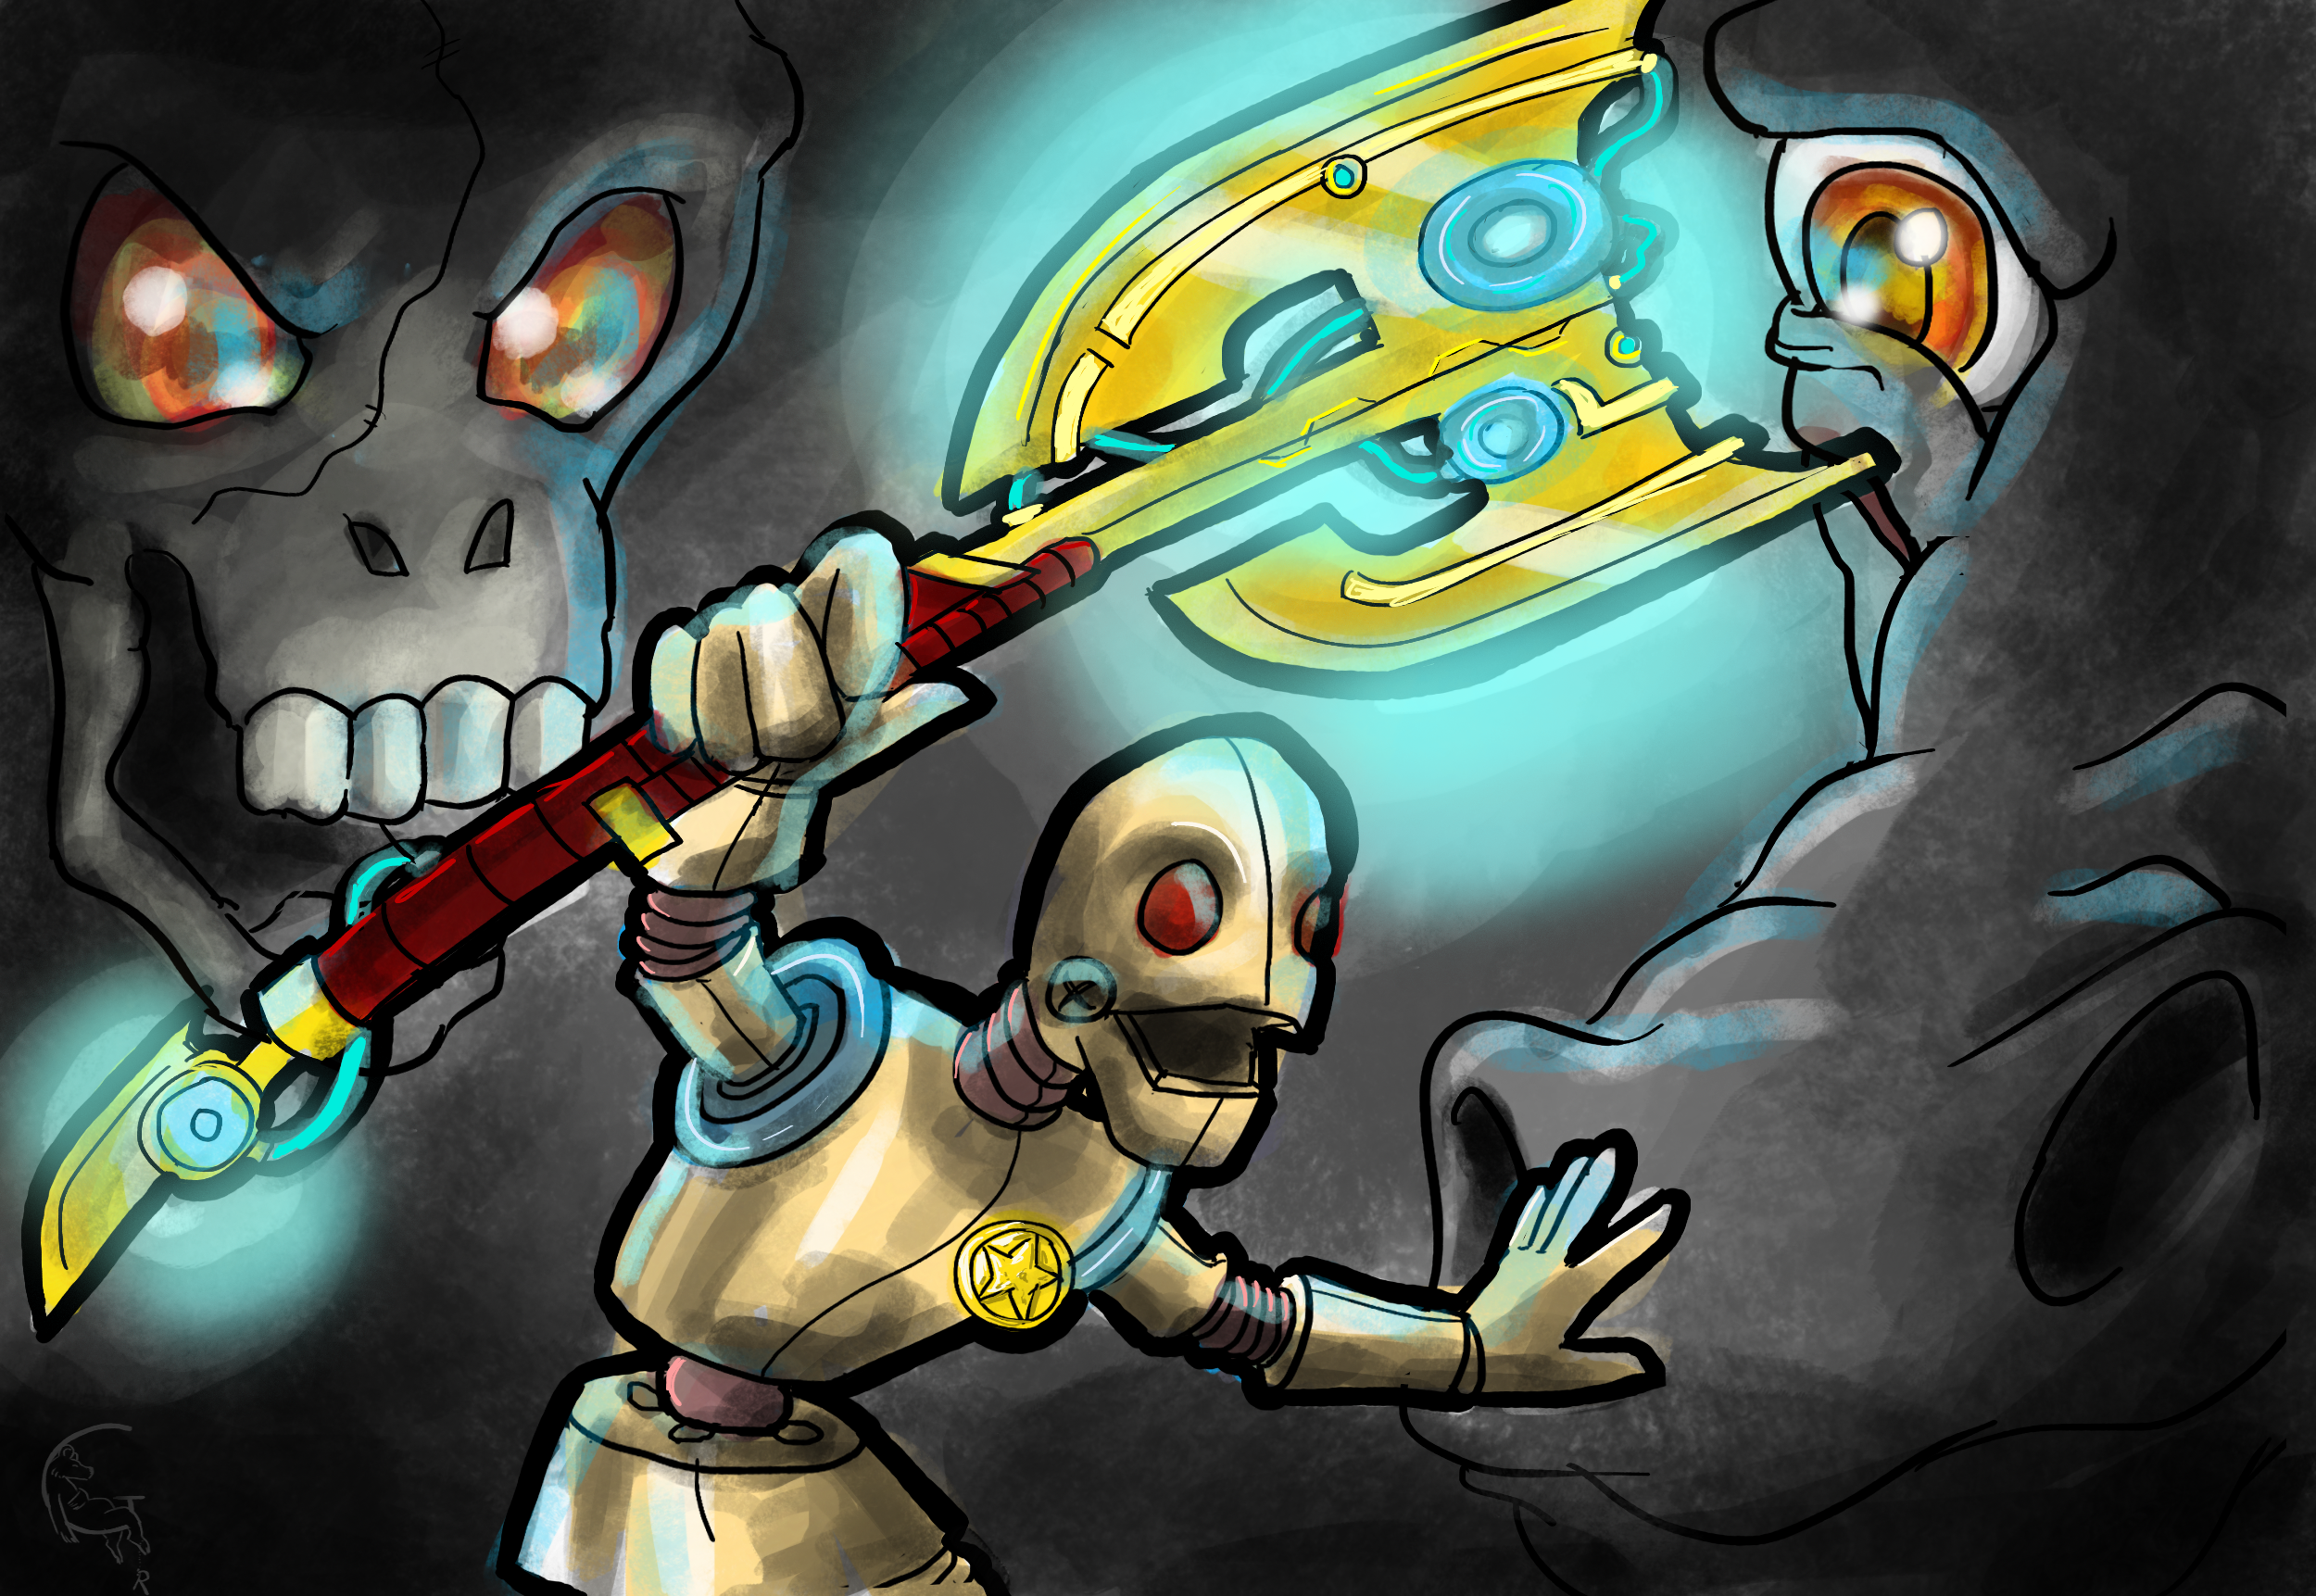 Sheriff Robot during an exploration, and fighting againt Evil